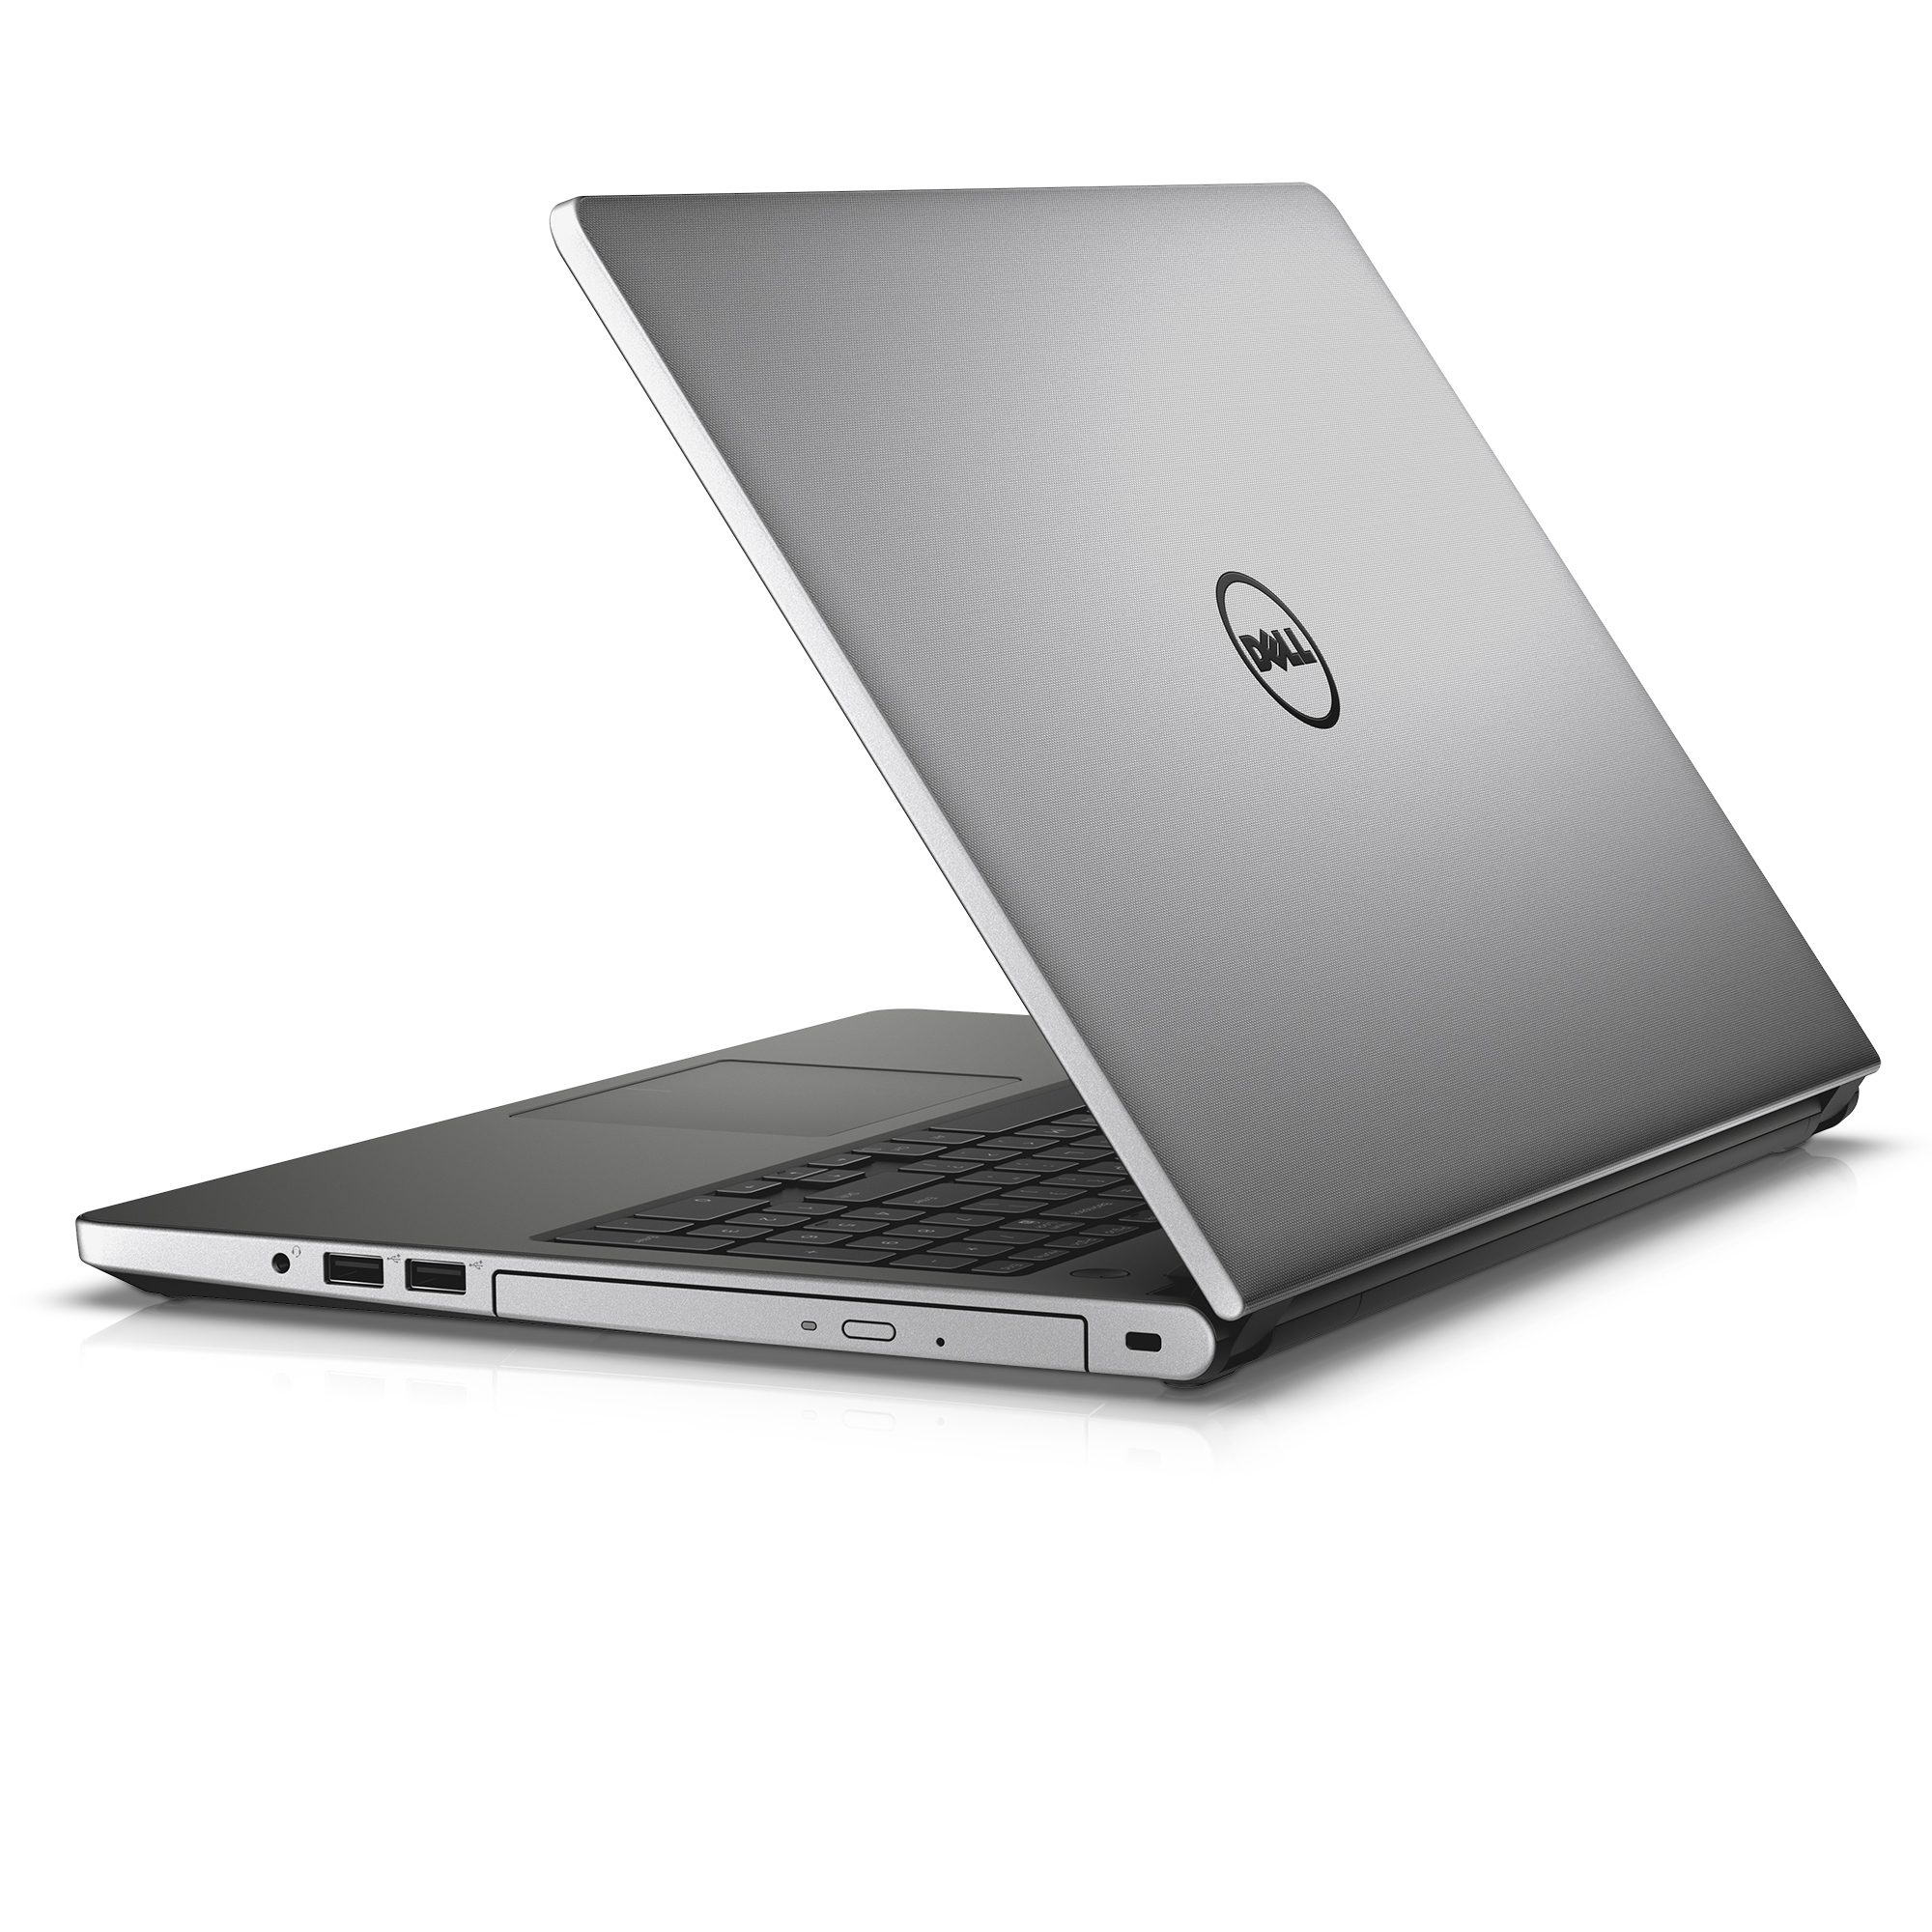 "Dell Inspiron 15"" Laptop AMD A10 12GB Memory 1TB HD Grey Walmart"